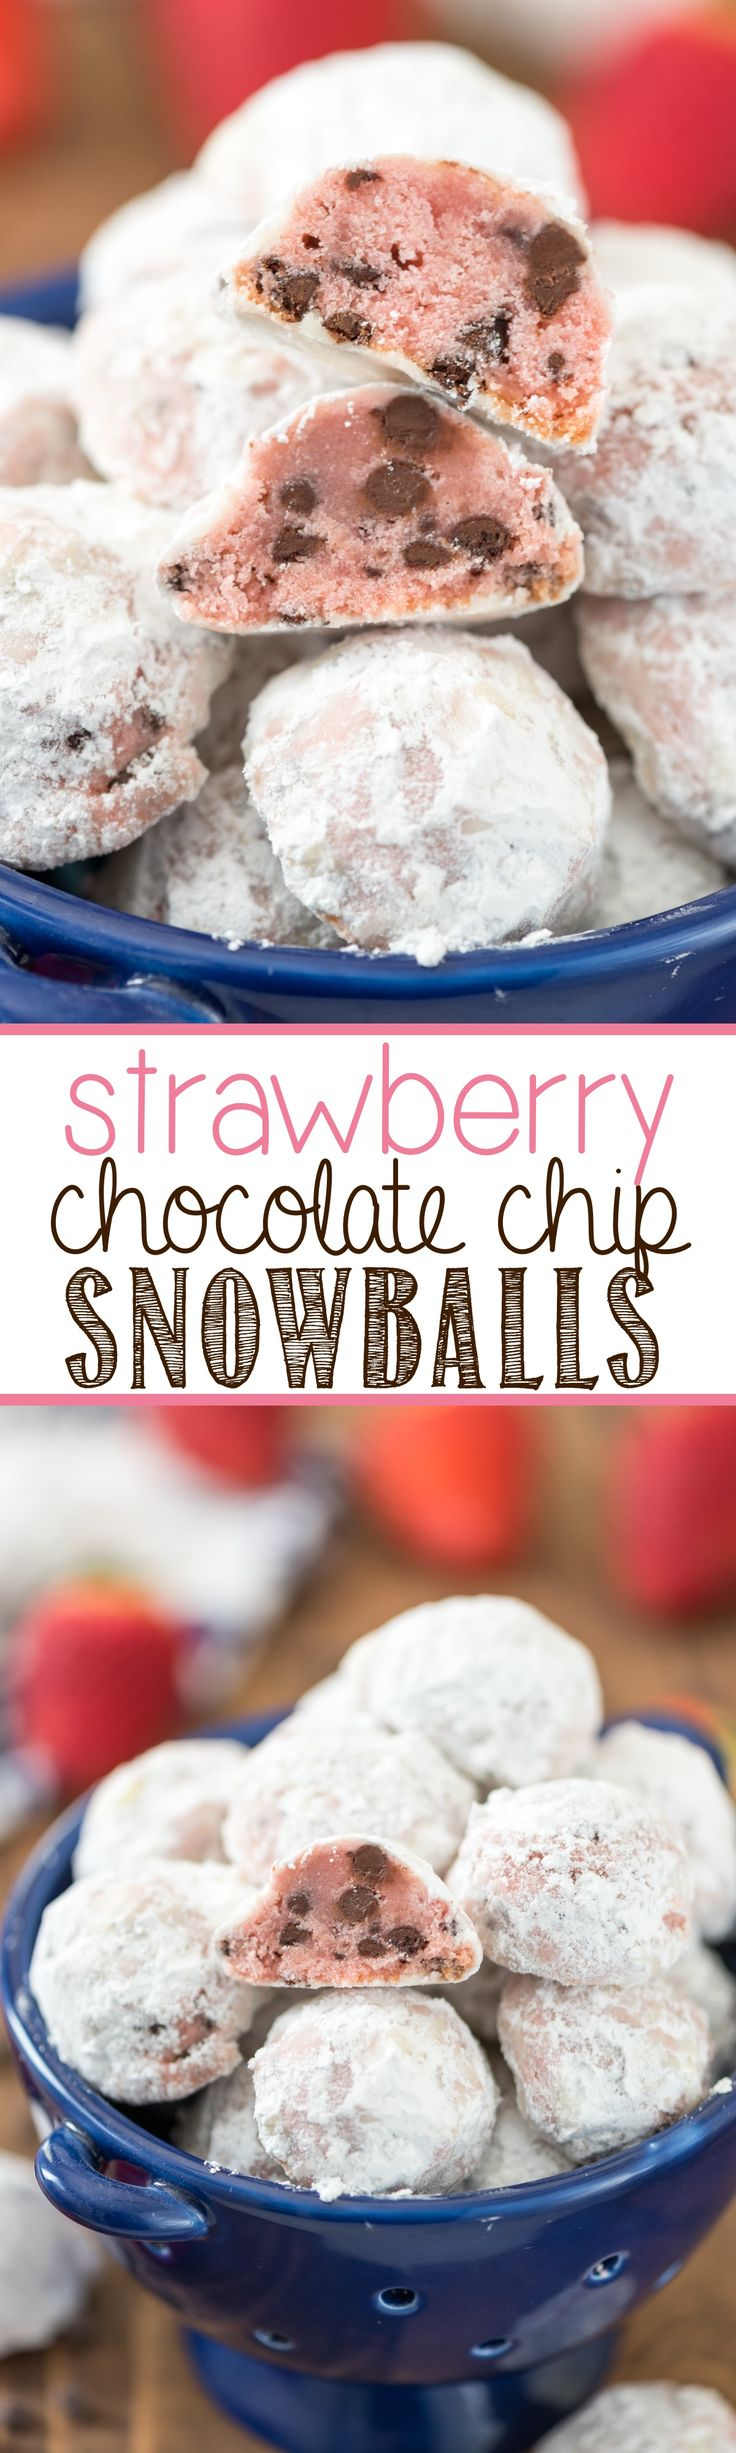 Strawberry Chocolate Chip Snowballs - I added strawberry to my favorite Russian Teacake recipe! These are the perfect EASY cookie for spring!